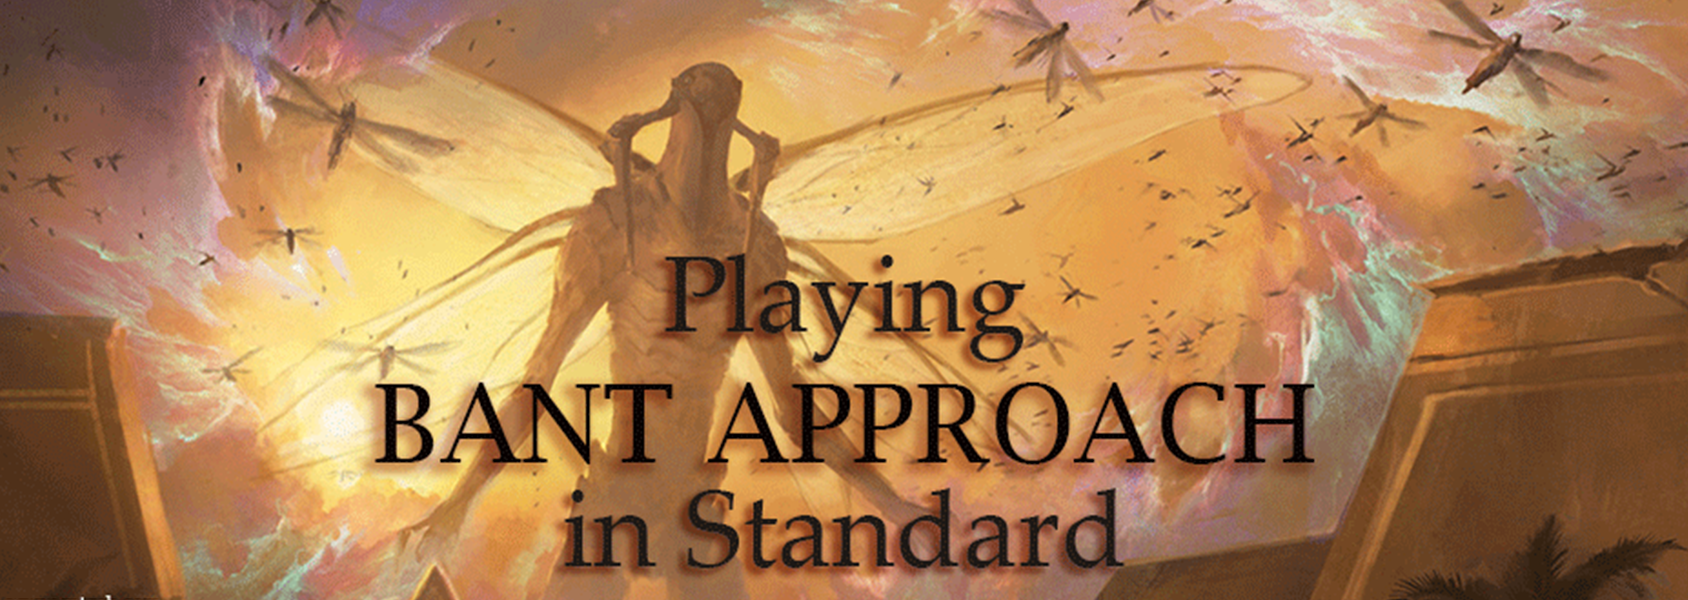 Bant Approach